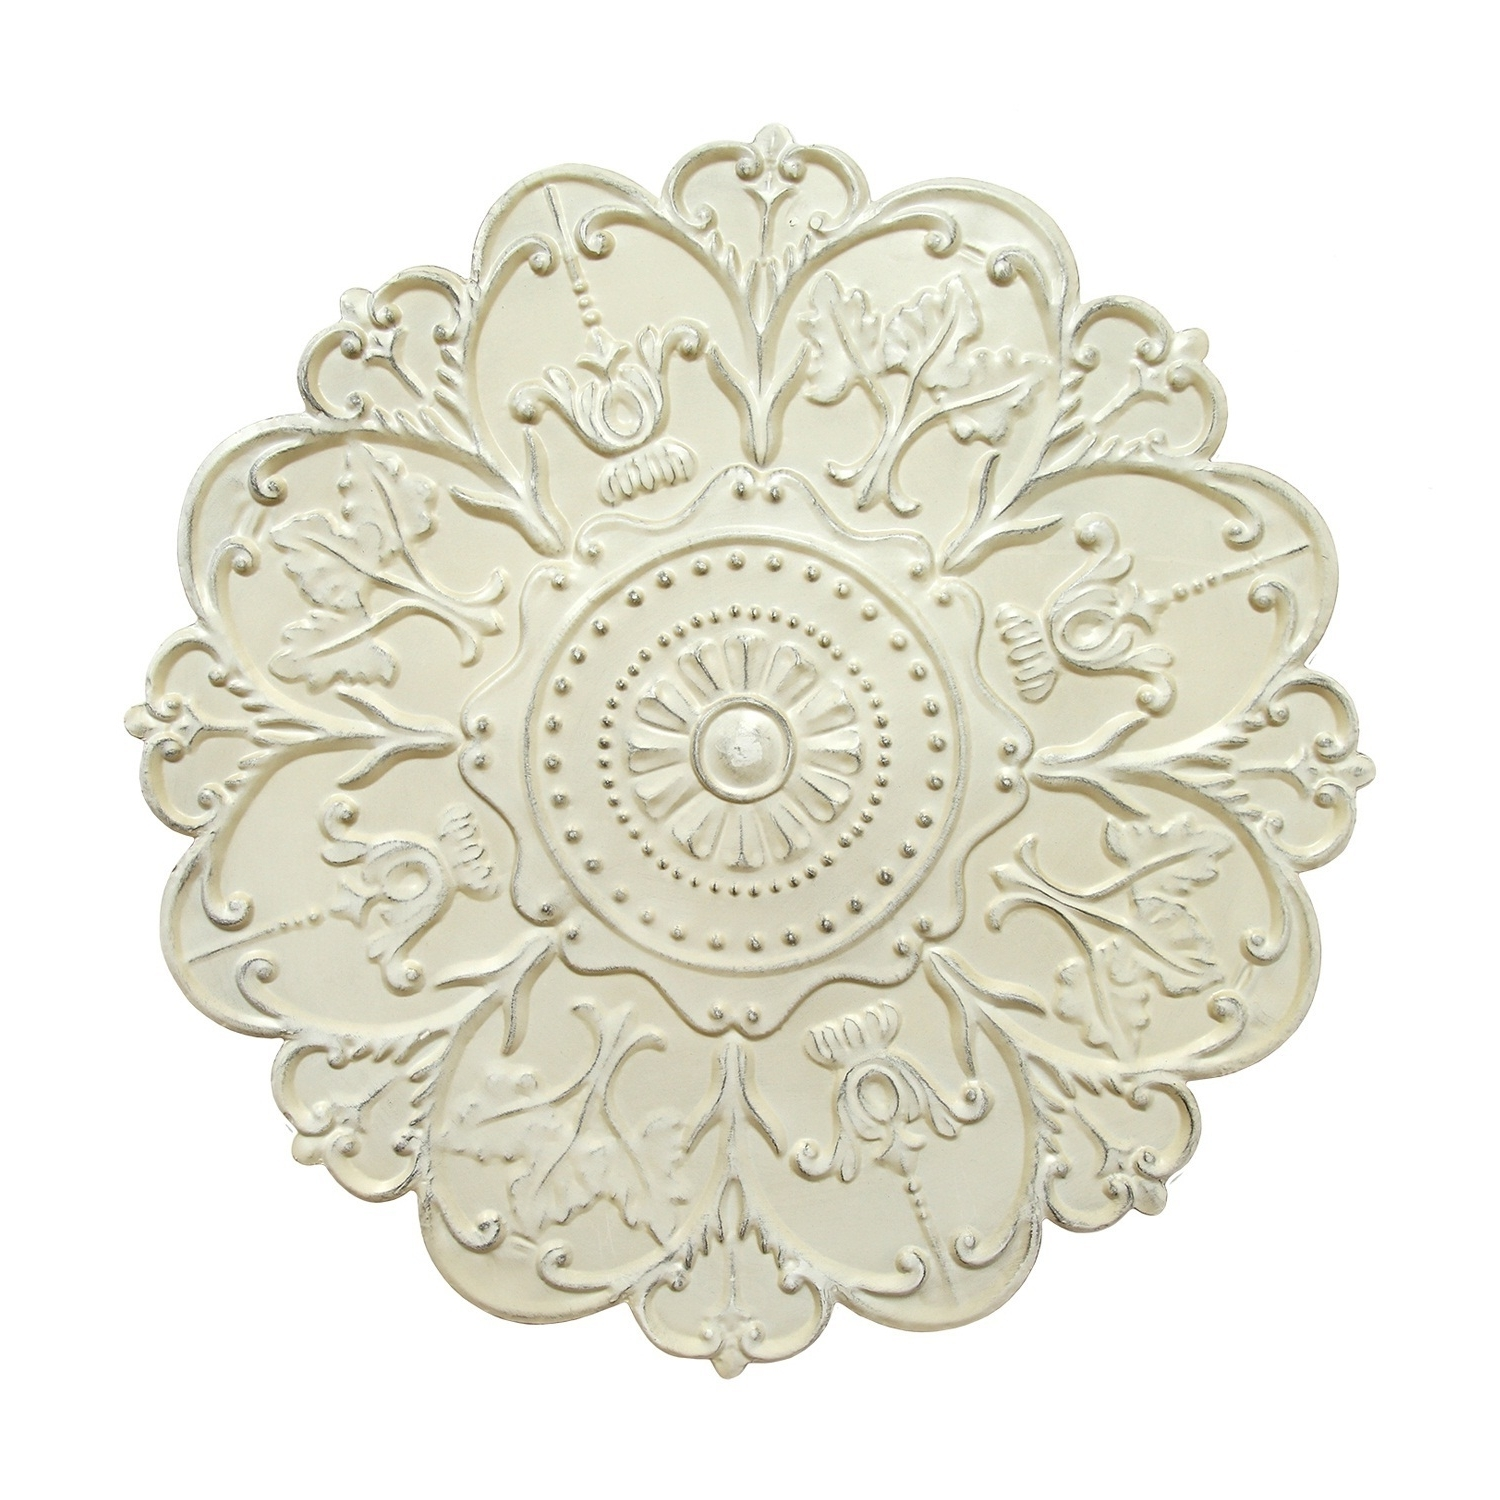 Medallion Wall Art Floral Accent Round Metal Home Decor Shabby White Intended For Most Popular Medallion Wall Art (Gallery 9 of 20)